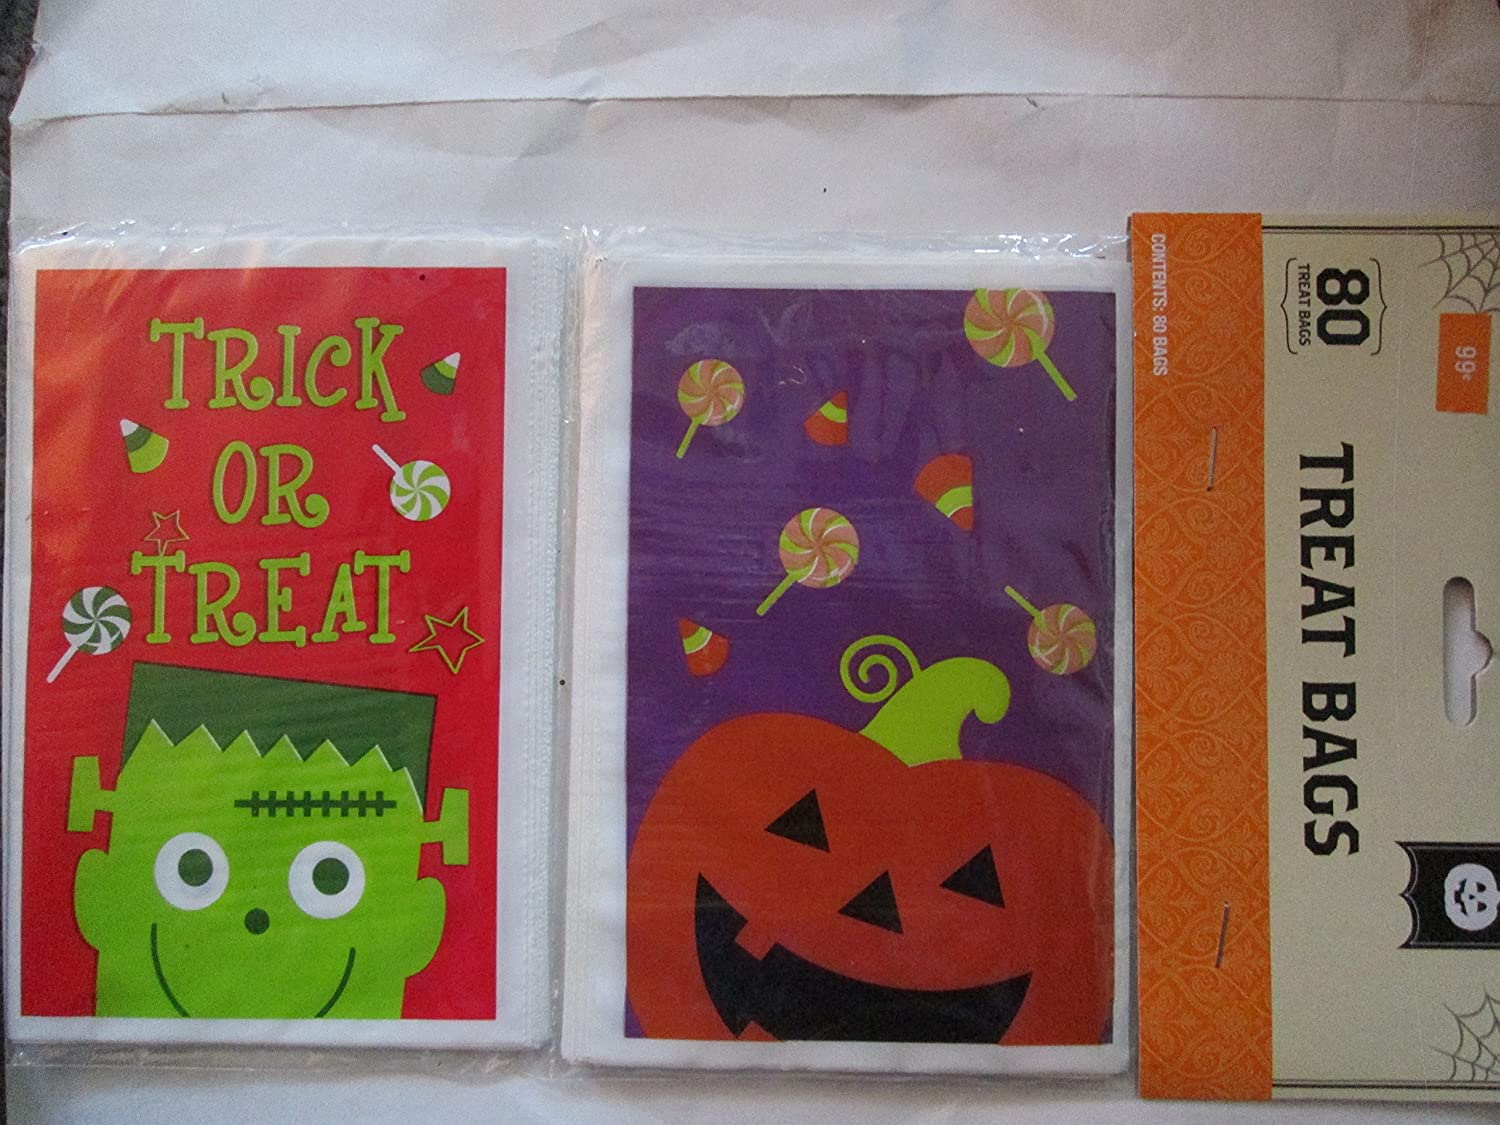 Halloween Party Packages.Eighty 5 X 6 Halloween Party Treat Bags Assorted Designs 3 Packages Of 80 Each 240 Bags Amazon In Home Kitchen